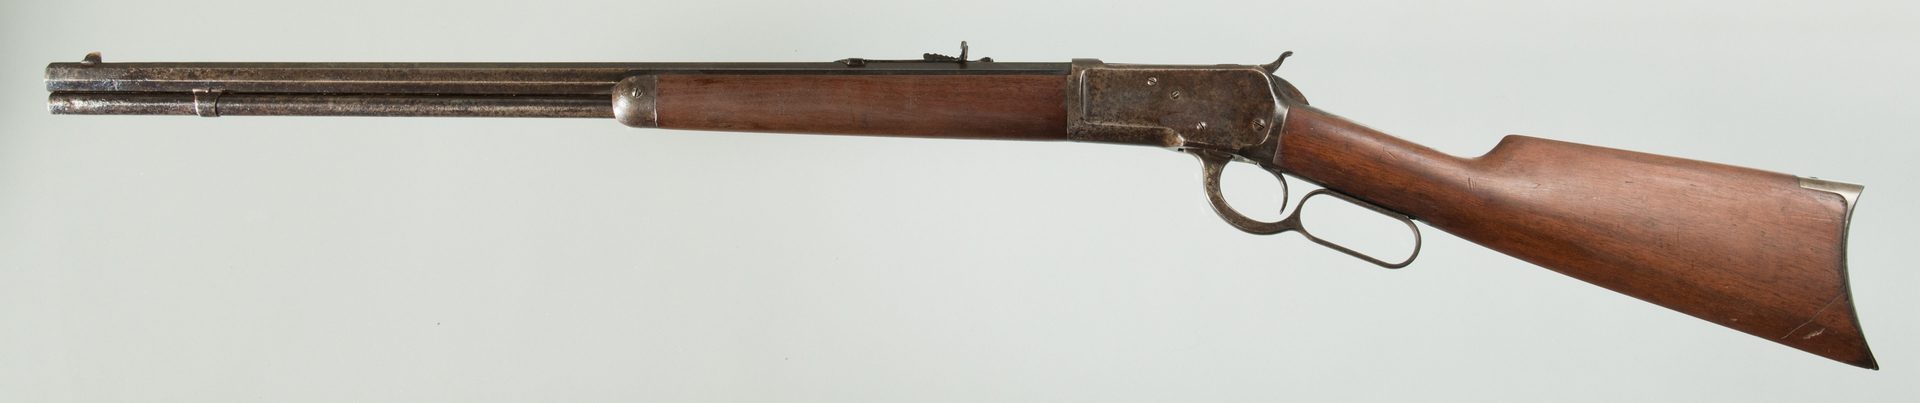 Lot 822: Winchester Model 1892, 32-20 Win Lever Action Rifle